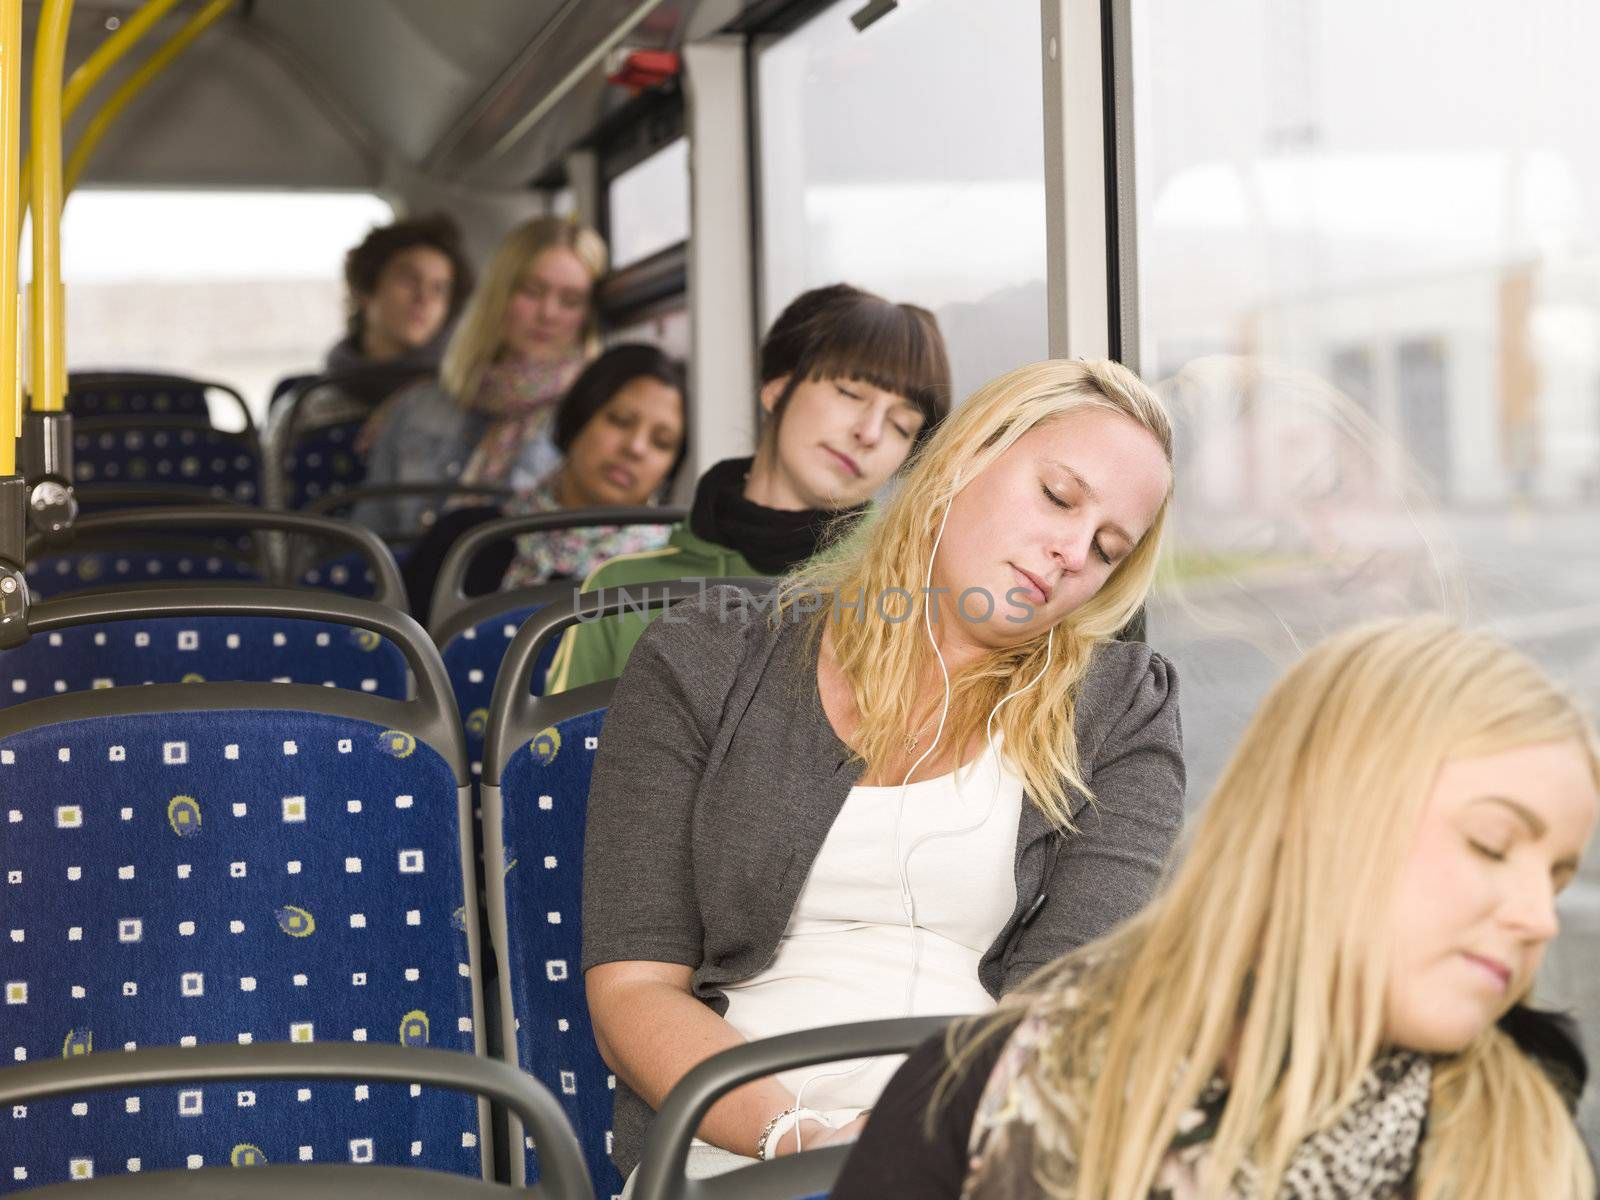 Small group of people sleeping on the bus